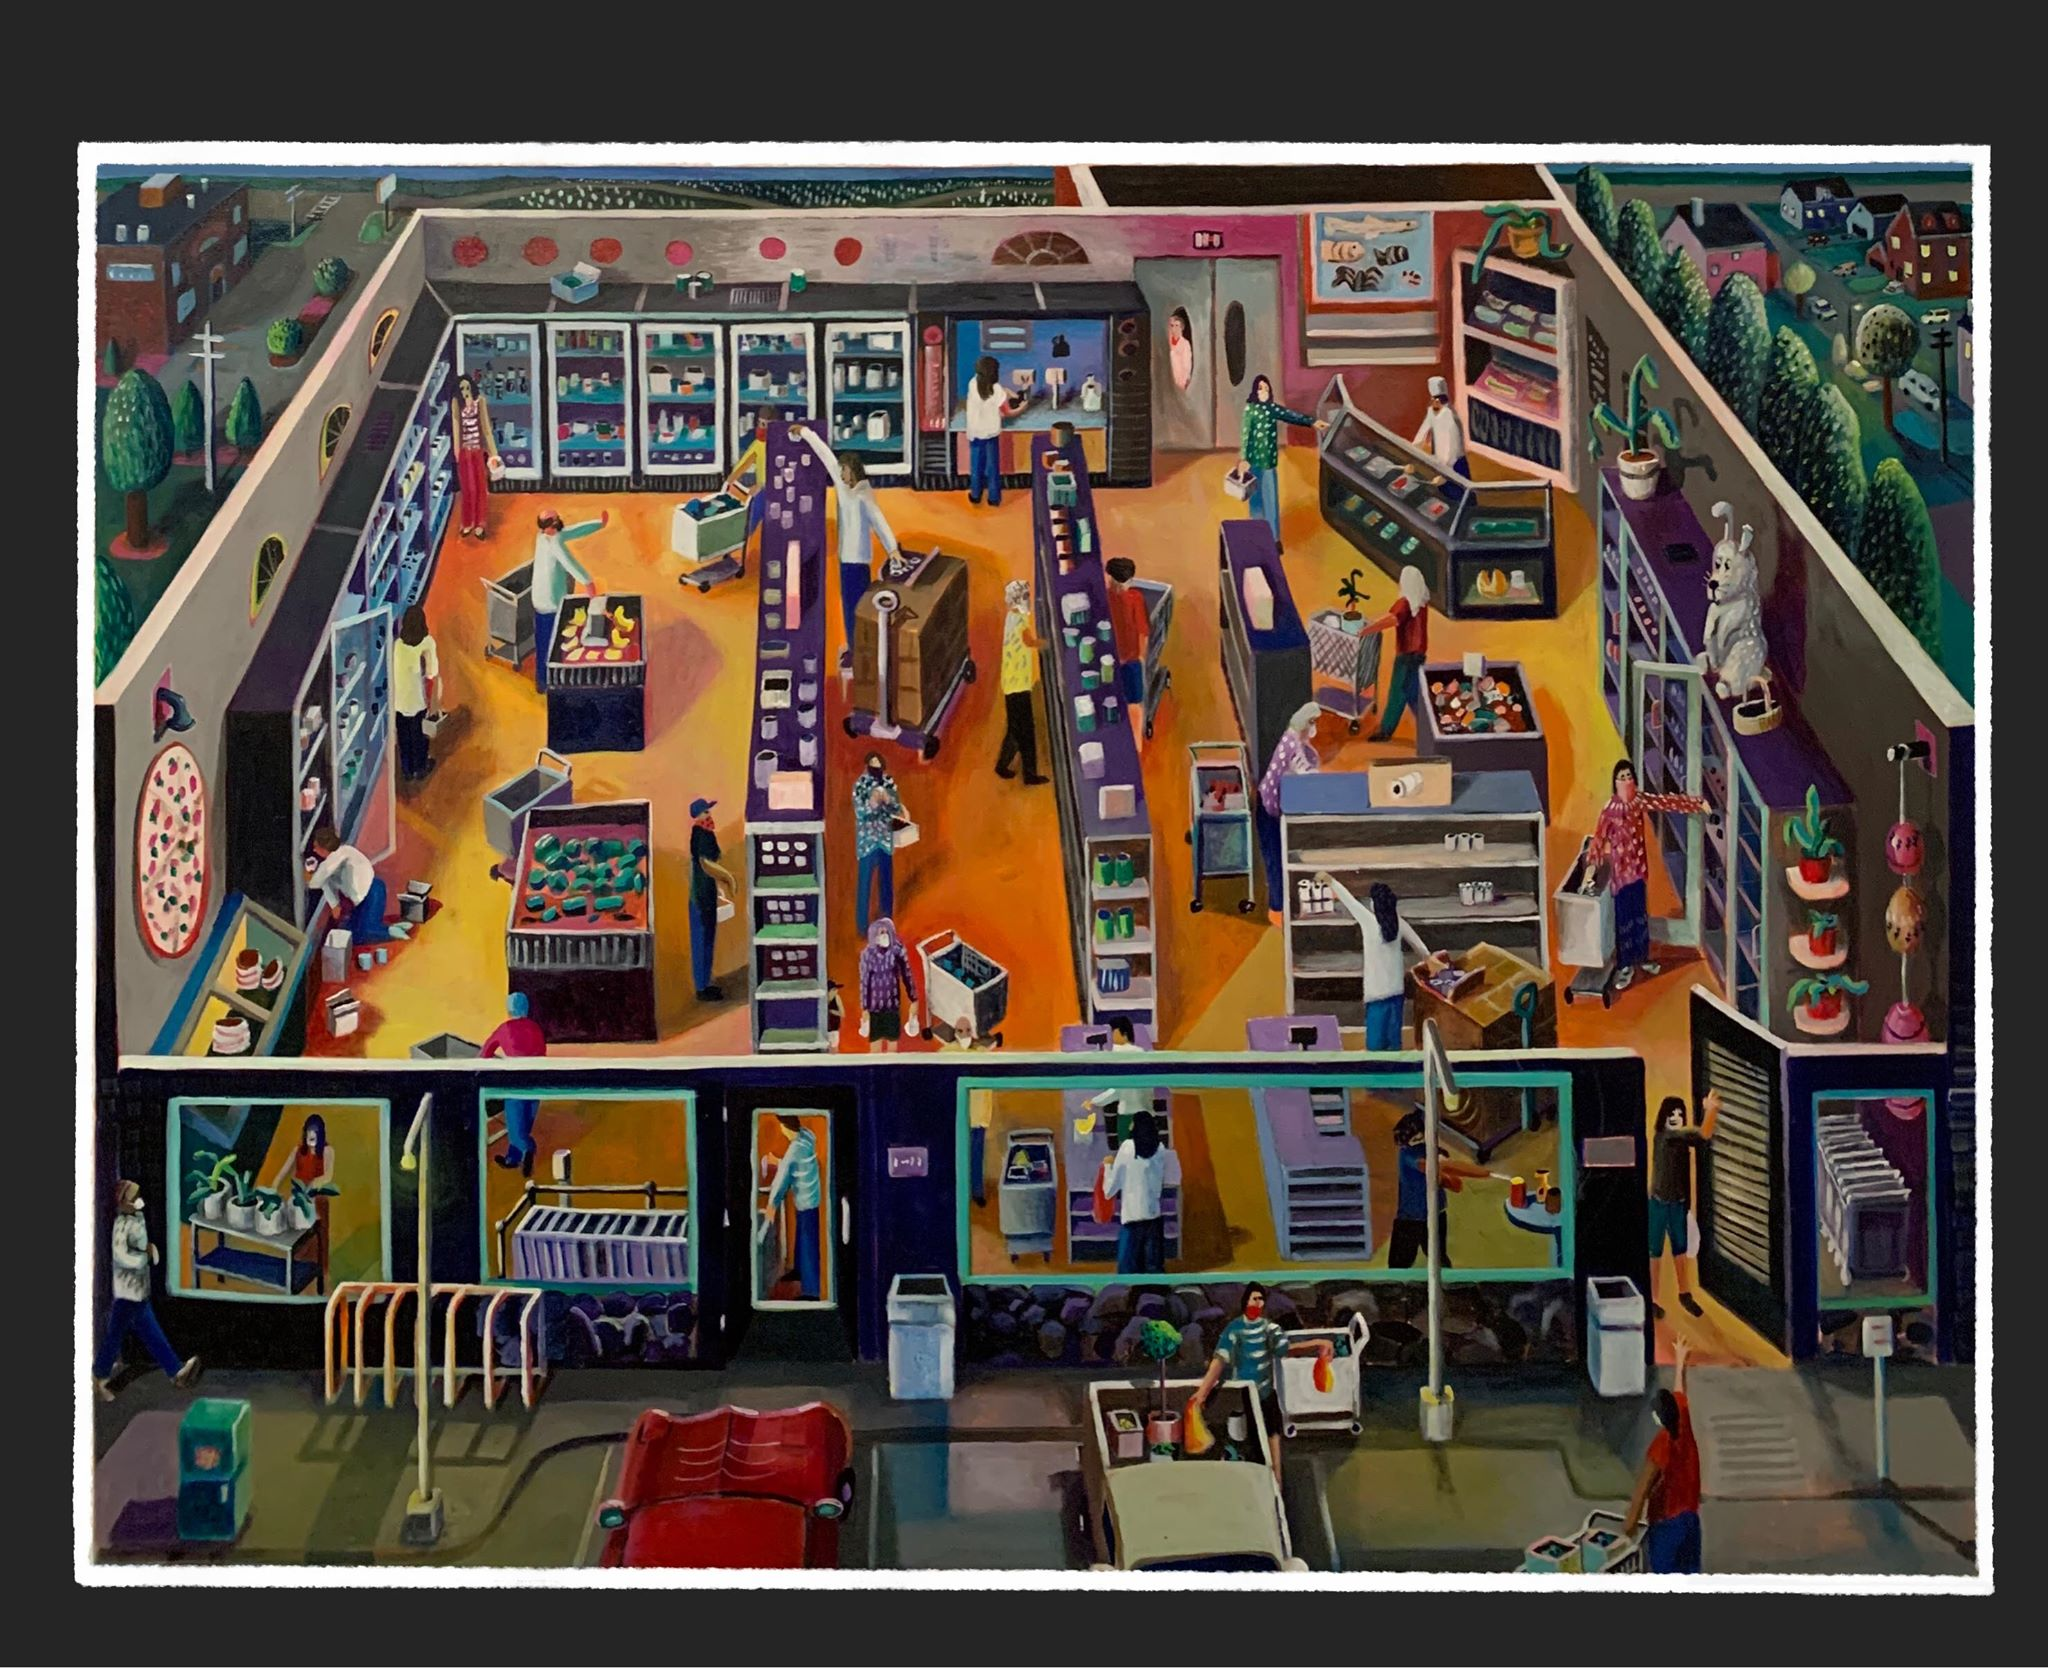 Painting of a grocery store with shoppers.